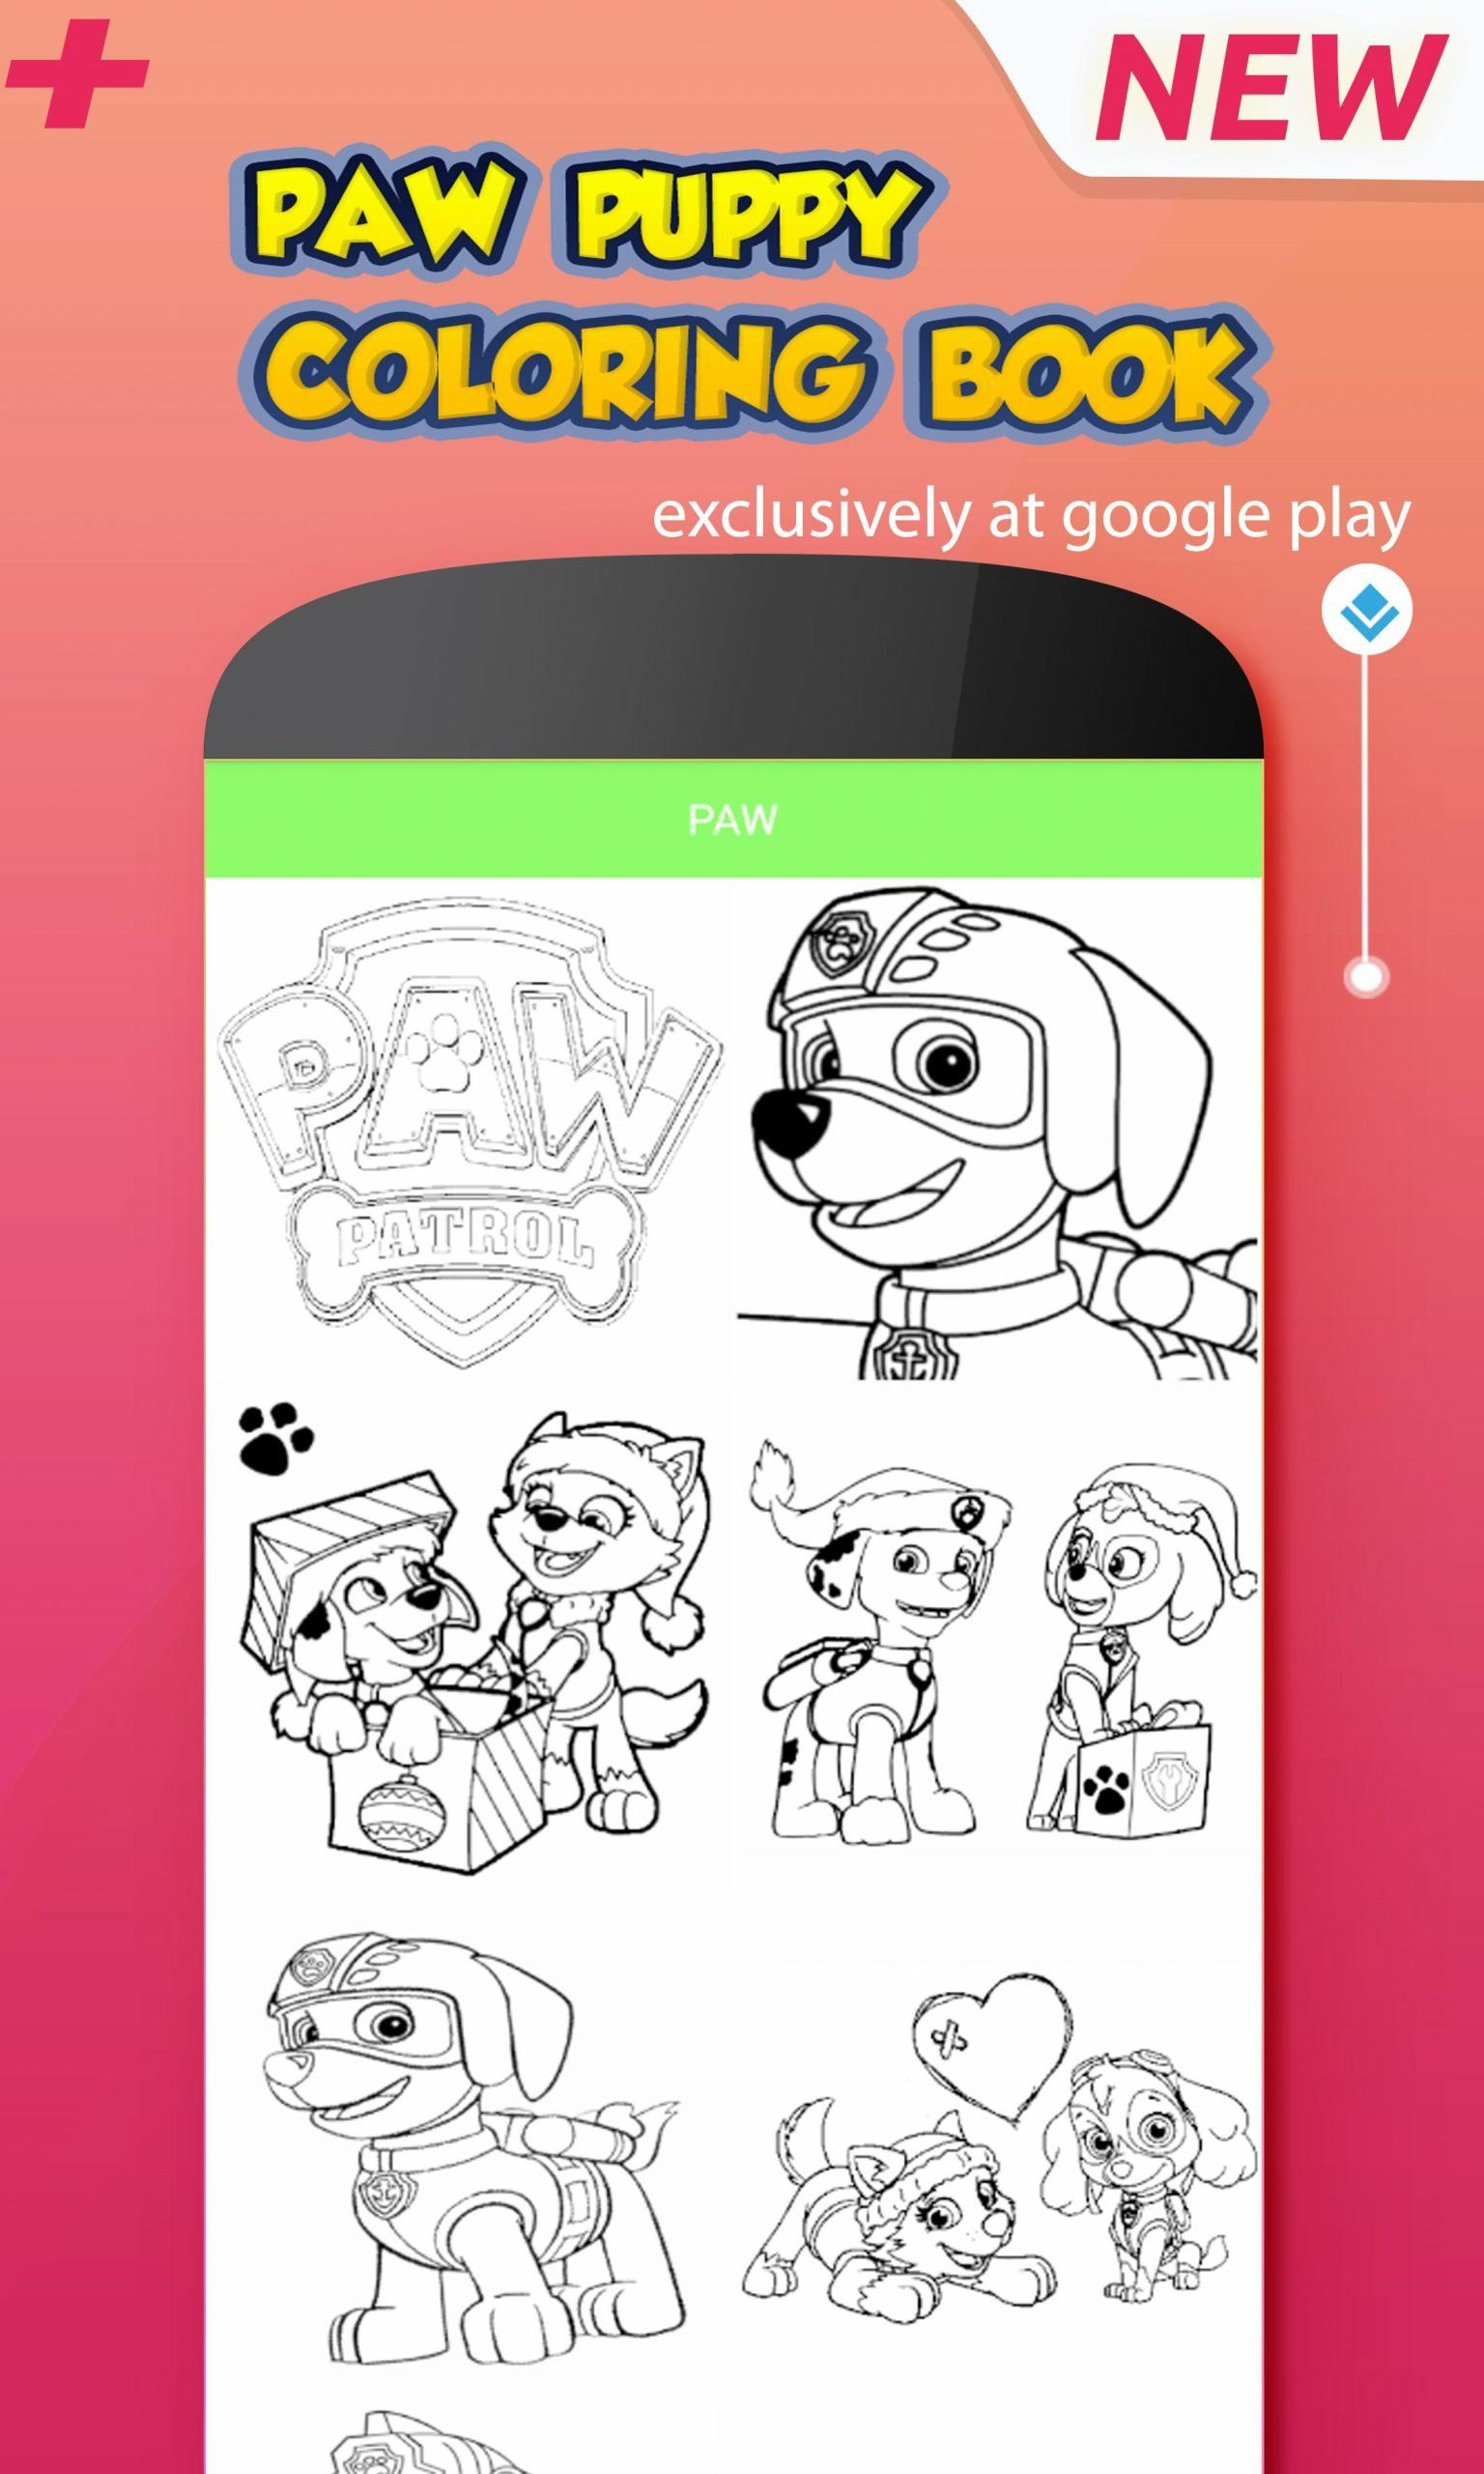 Paw Patrol Coloring Game Paw Puppy Pups Patrol Coloring Game For Android Apk Download In 2020 Paw Patrol Coloring Paw Patrol Coloring Pages Peppa Pig Coloring Pages